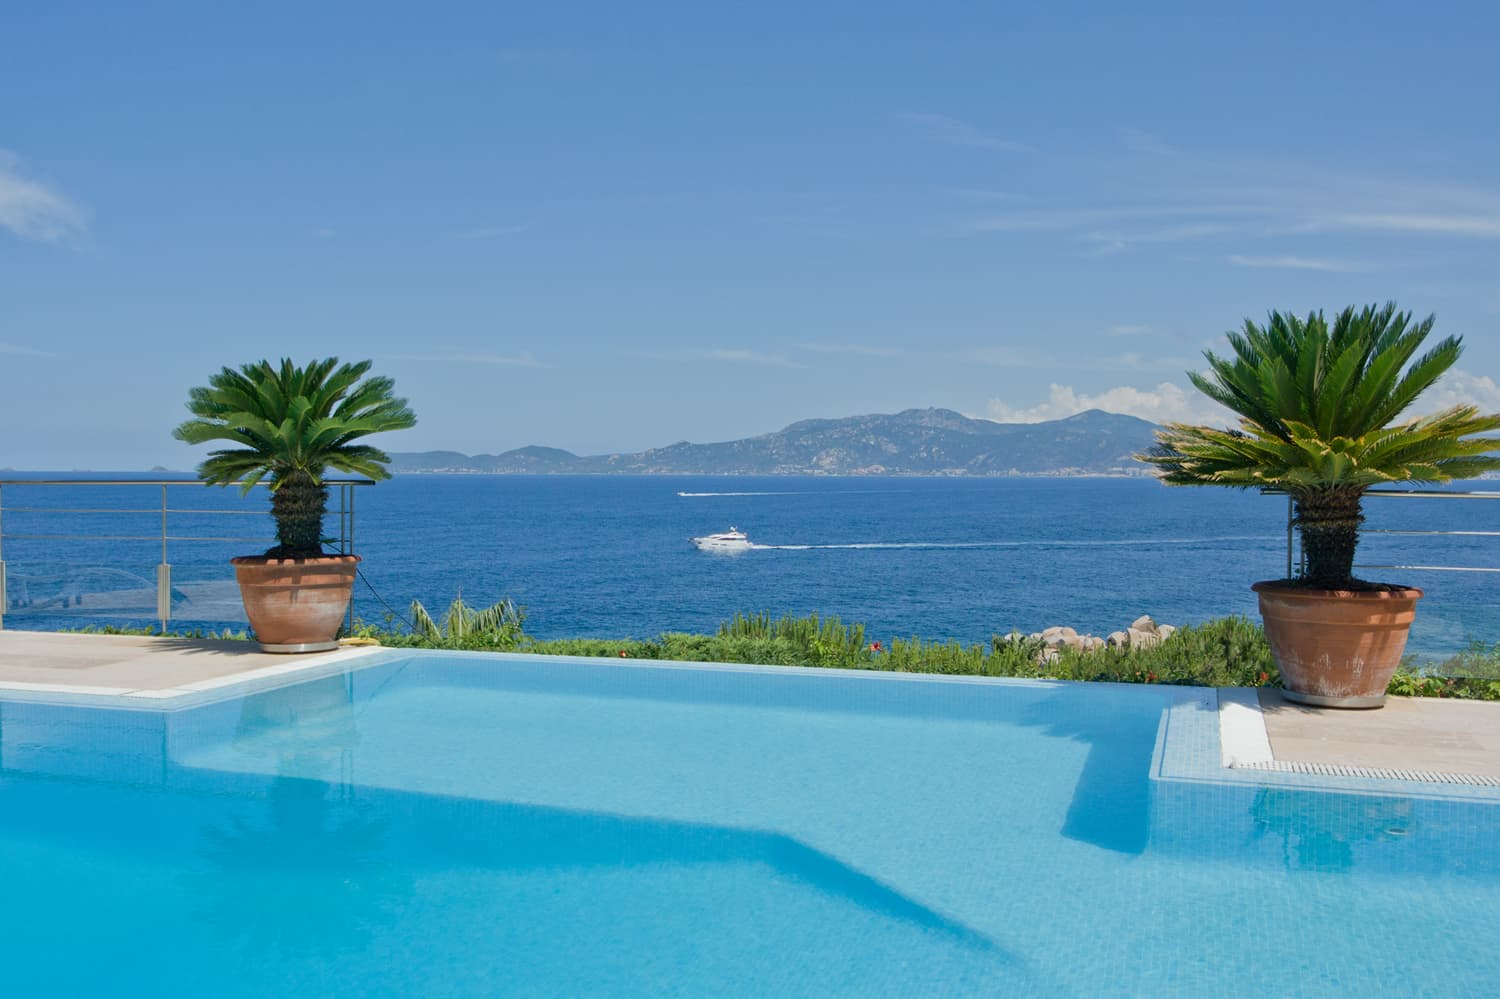 Coastal holiday villa on the island of Corsica with views of the Mediterranean and private pool | Villa Chiavari